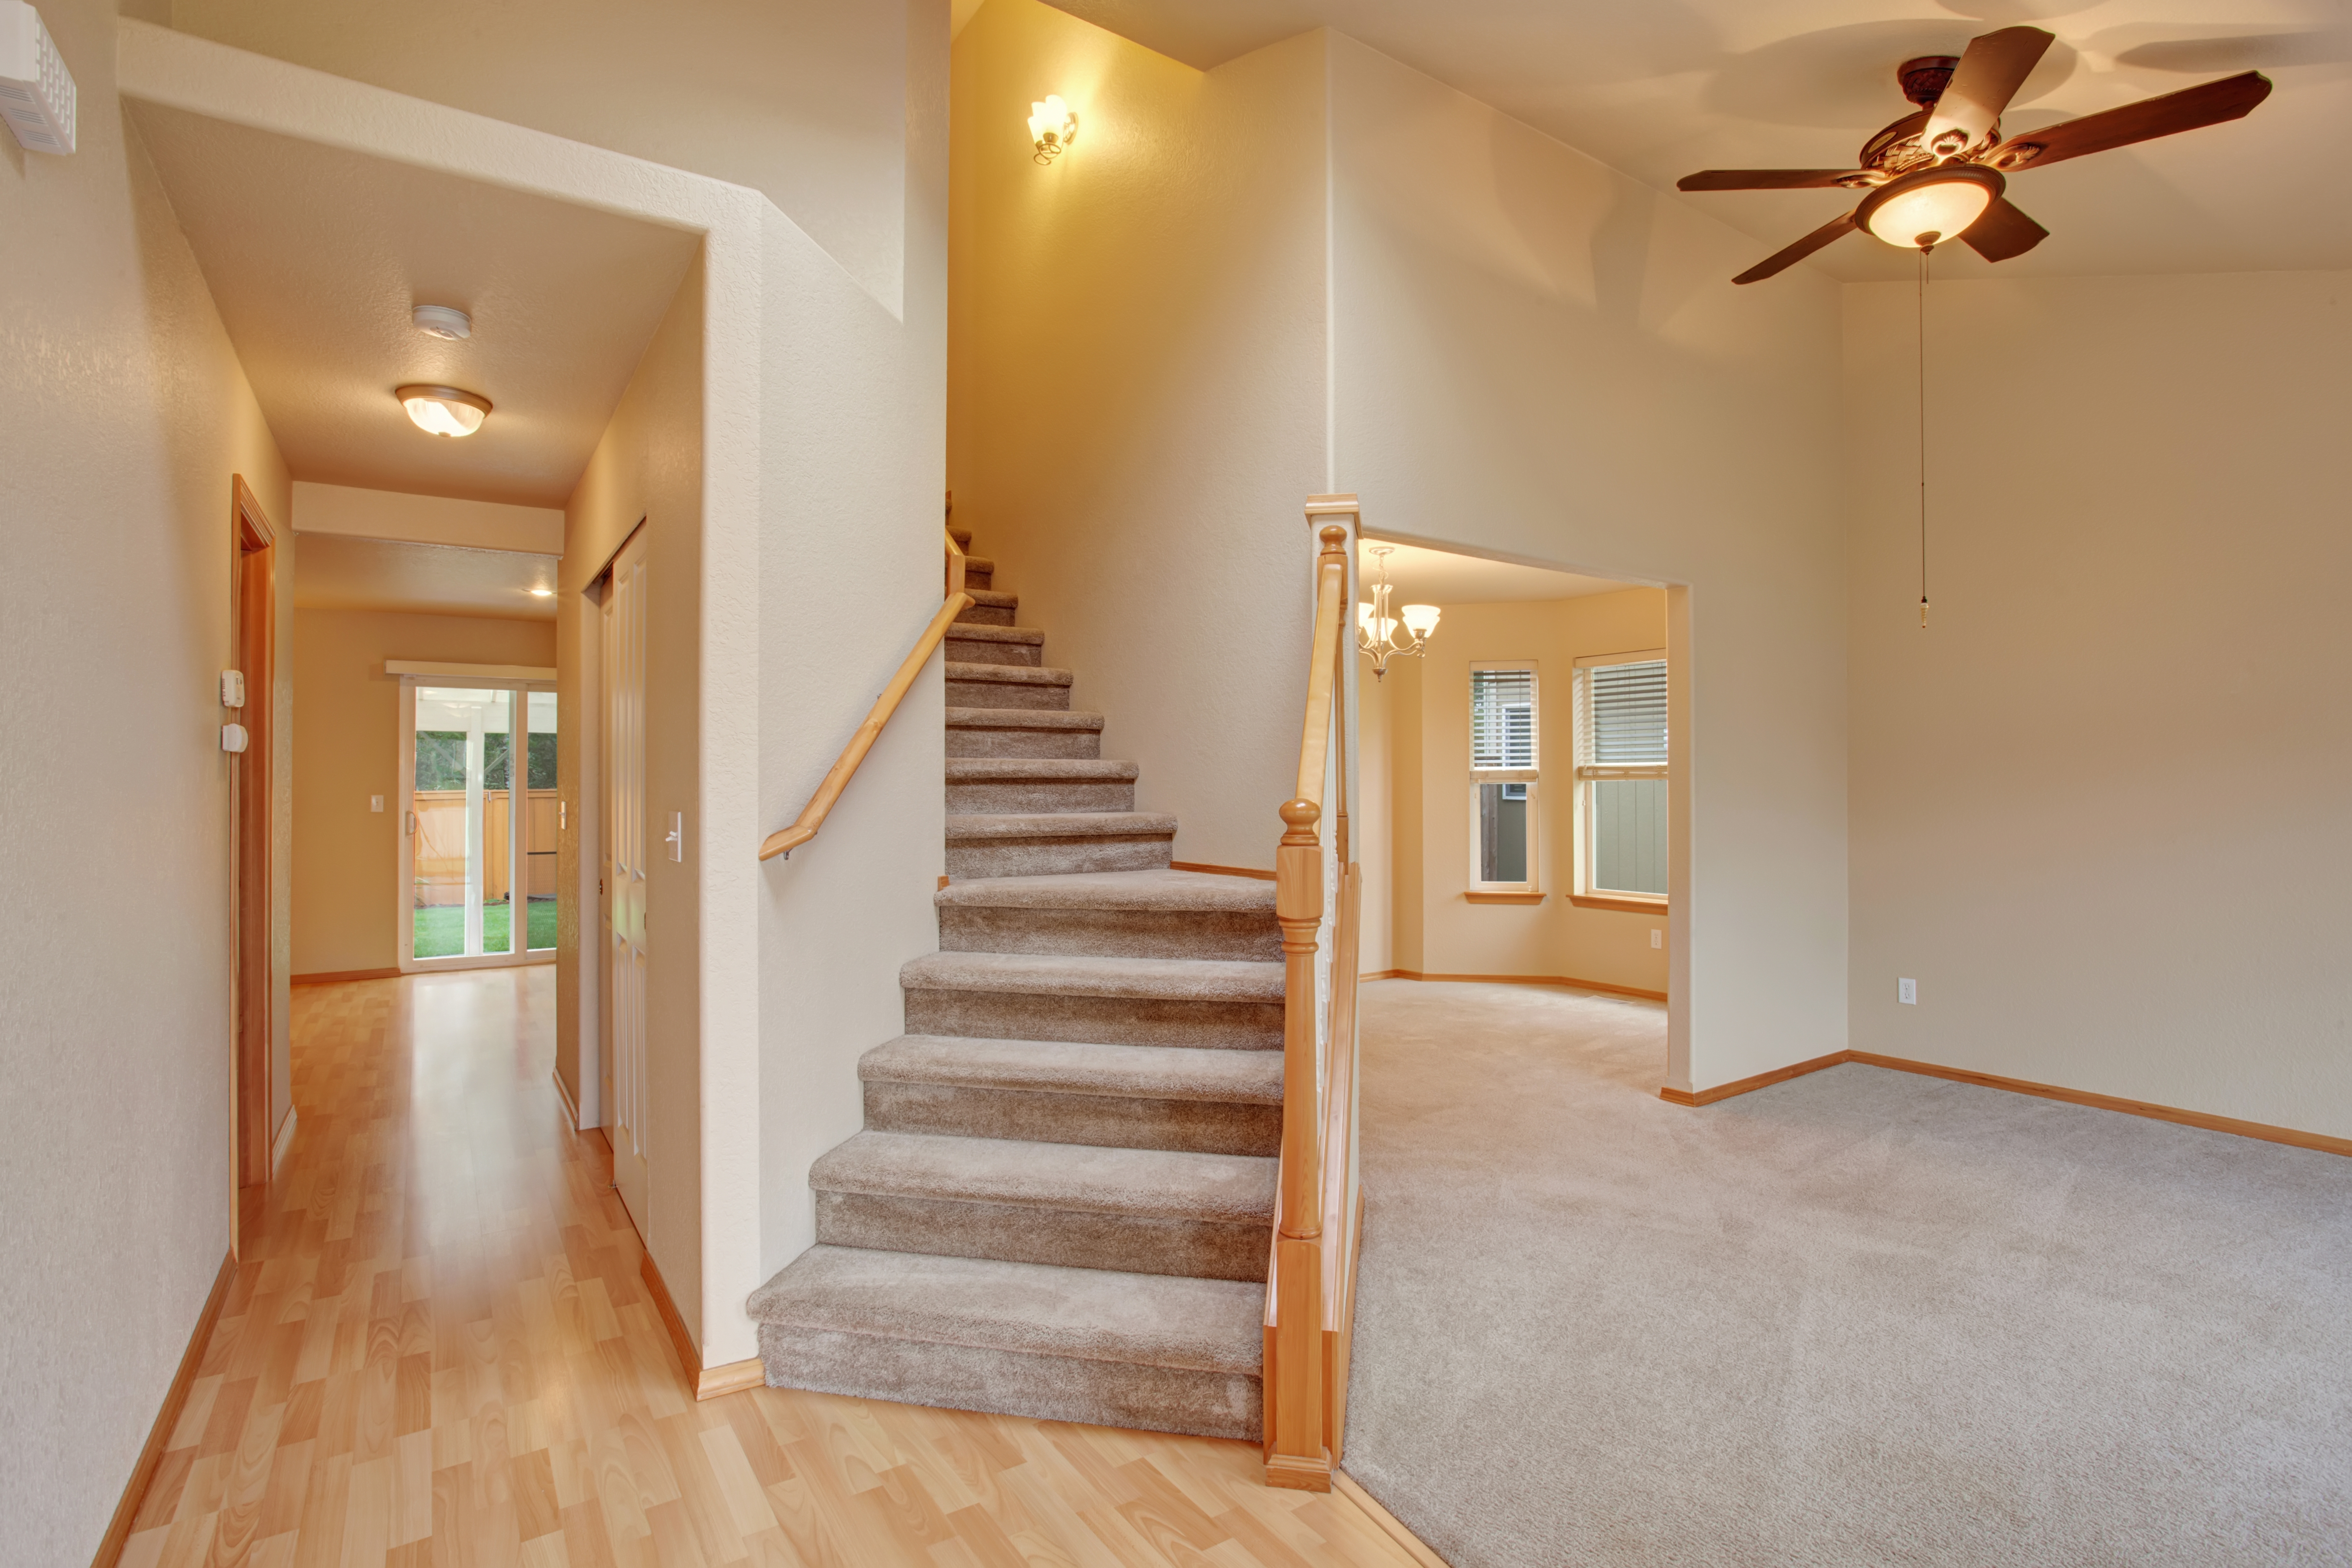 How To Lay Carpet On Stairs And The Landing Builddirectlearning | No Carpet On Stairs | Stair Case | Wood | Non Slip | Prefinished Stair | Hardwood